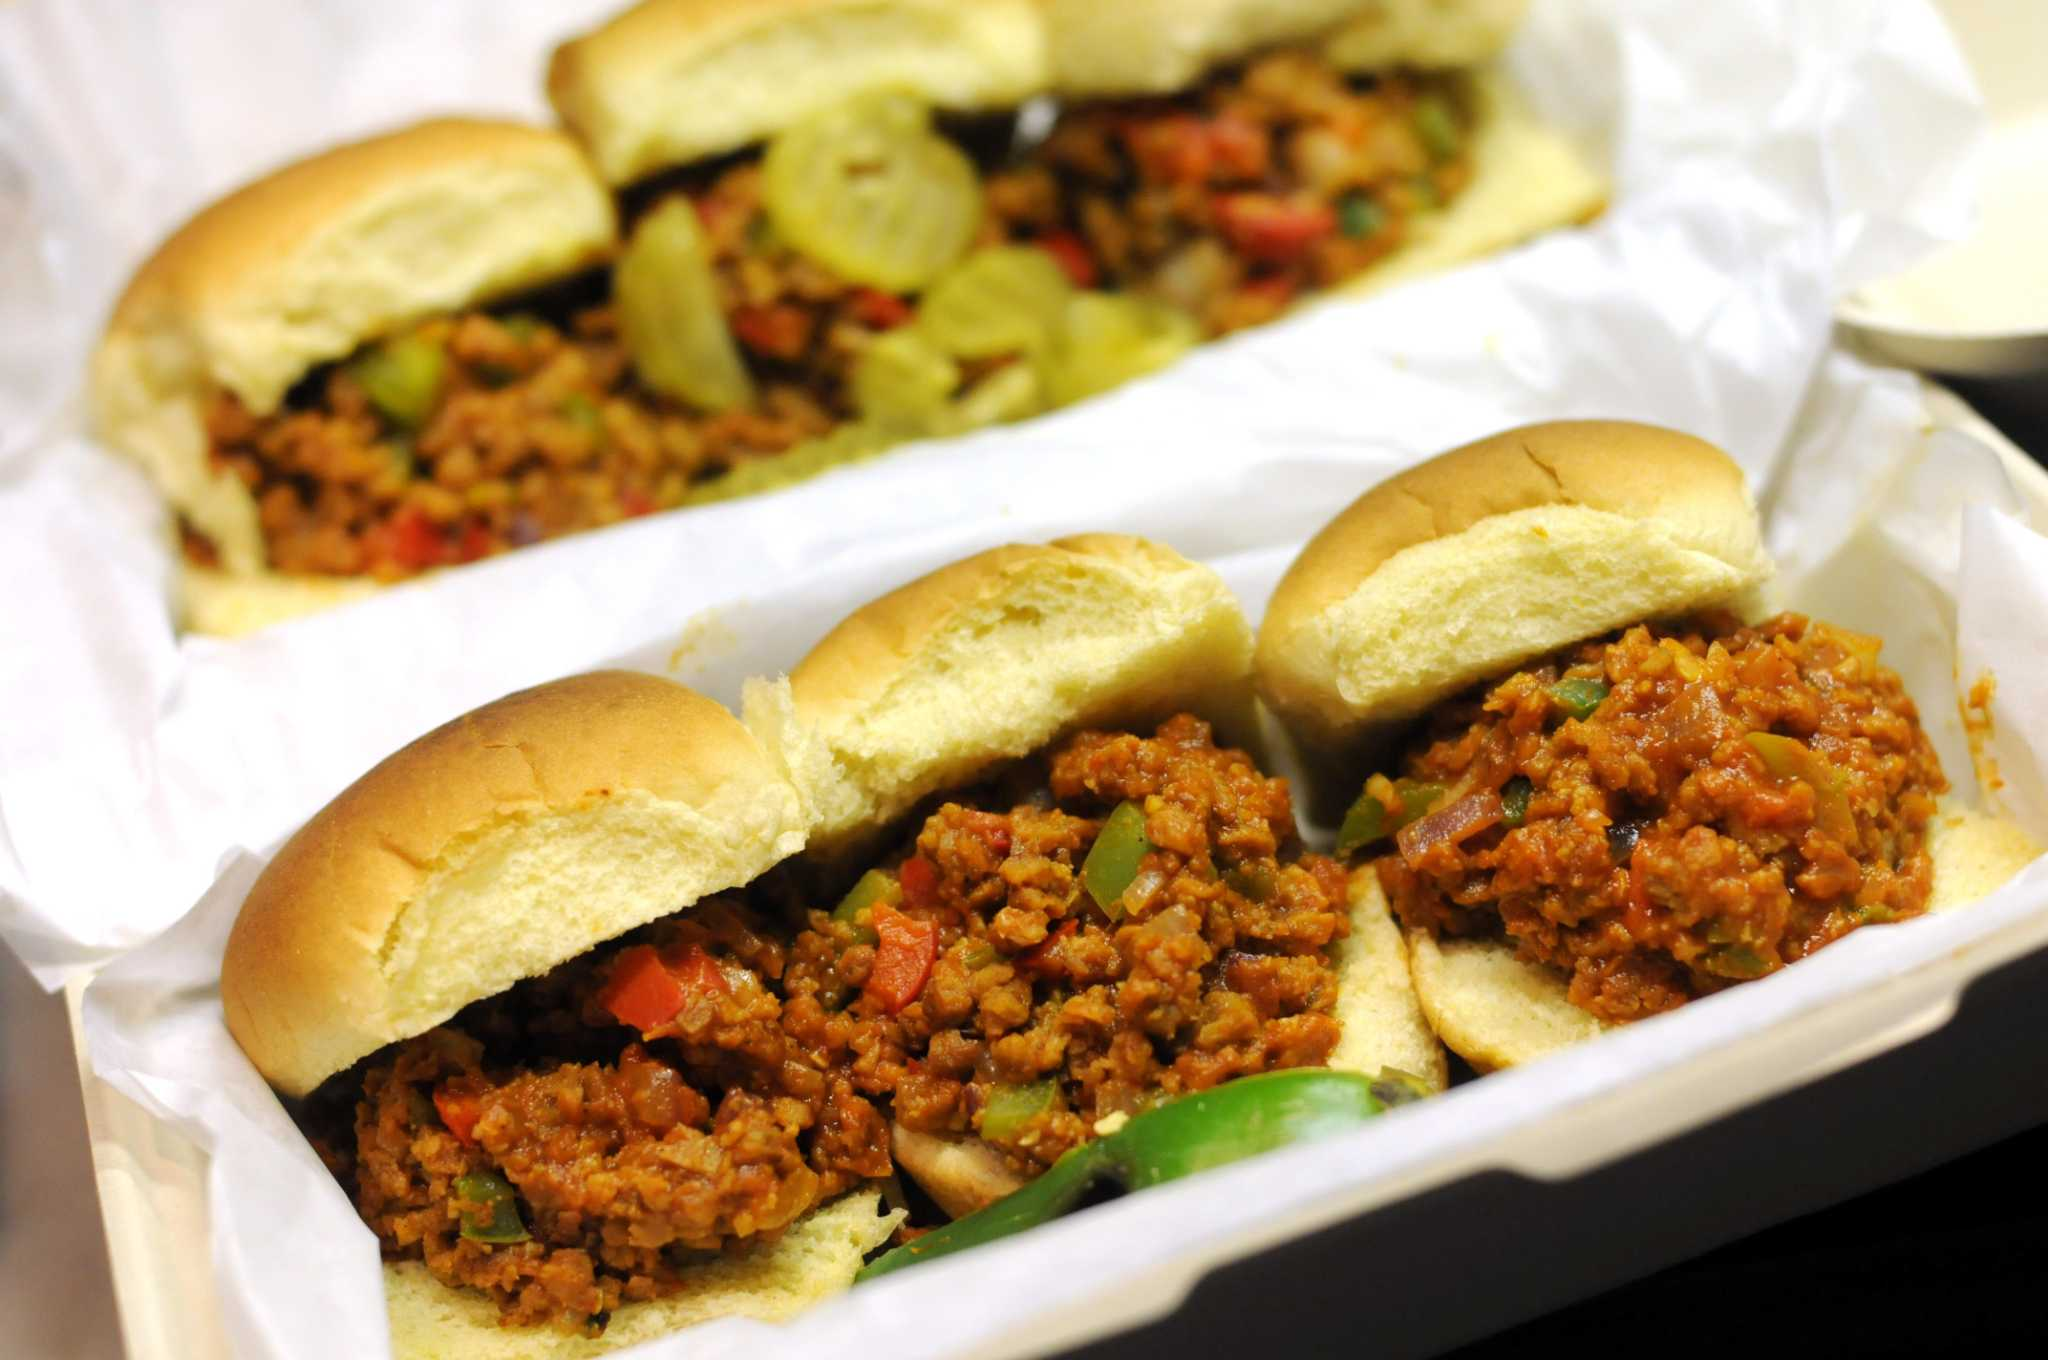 You'll crave the vegan sloppy Joe from Tidy Ben's